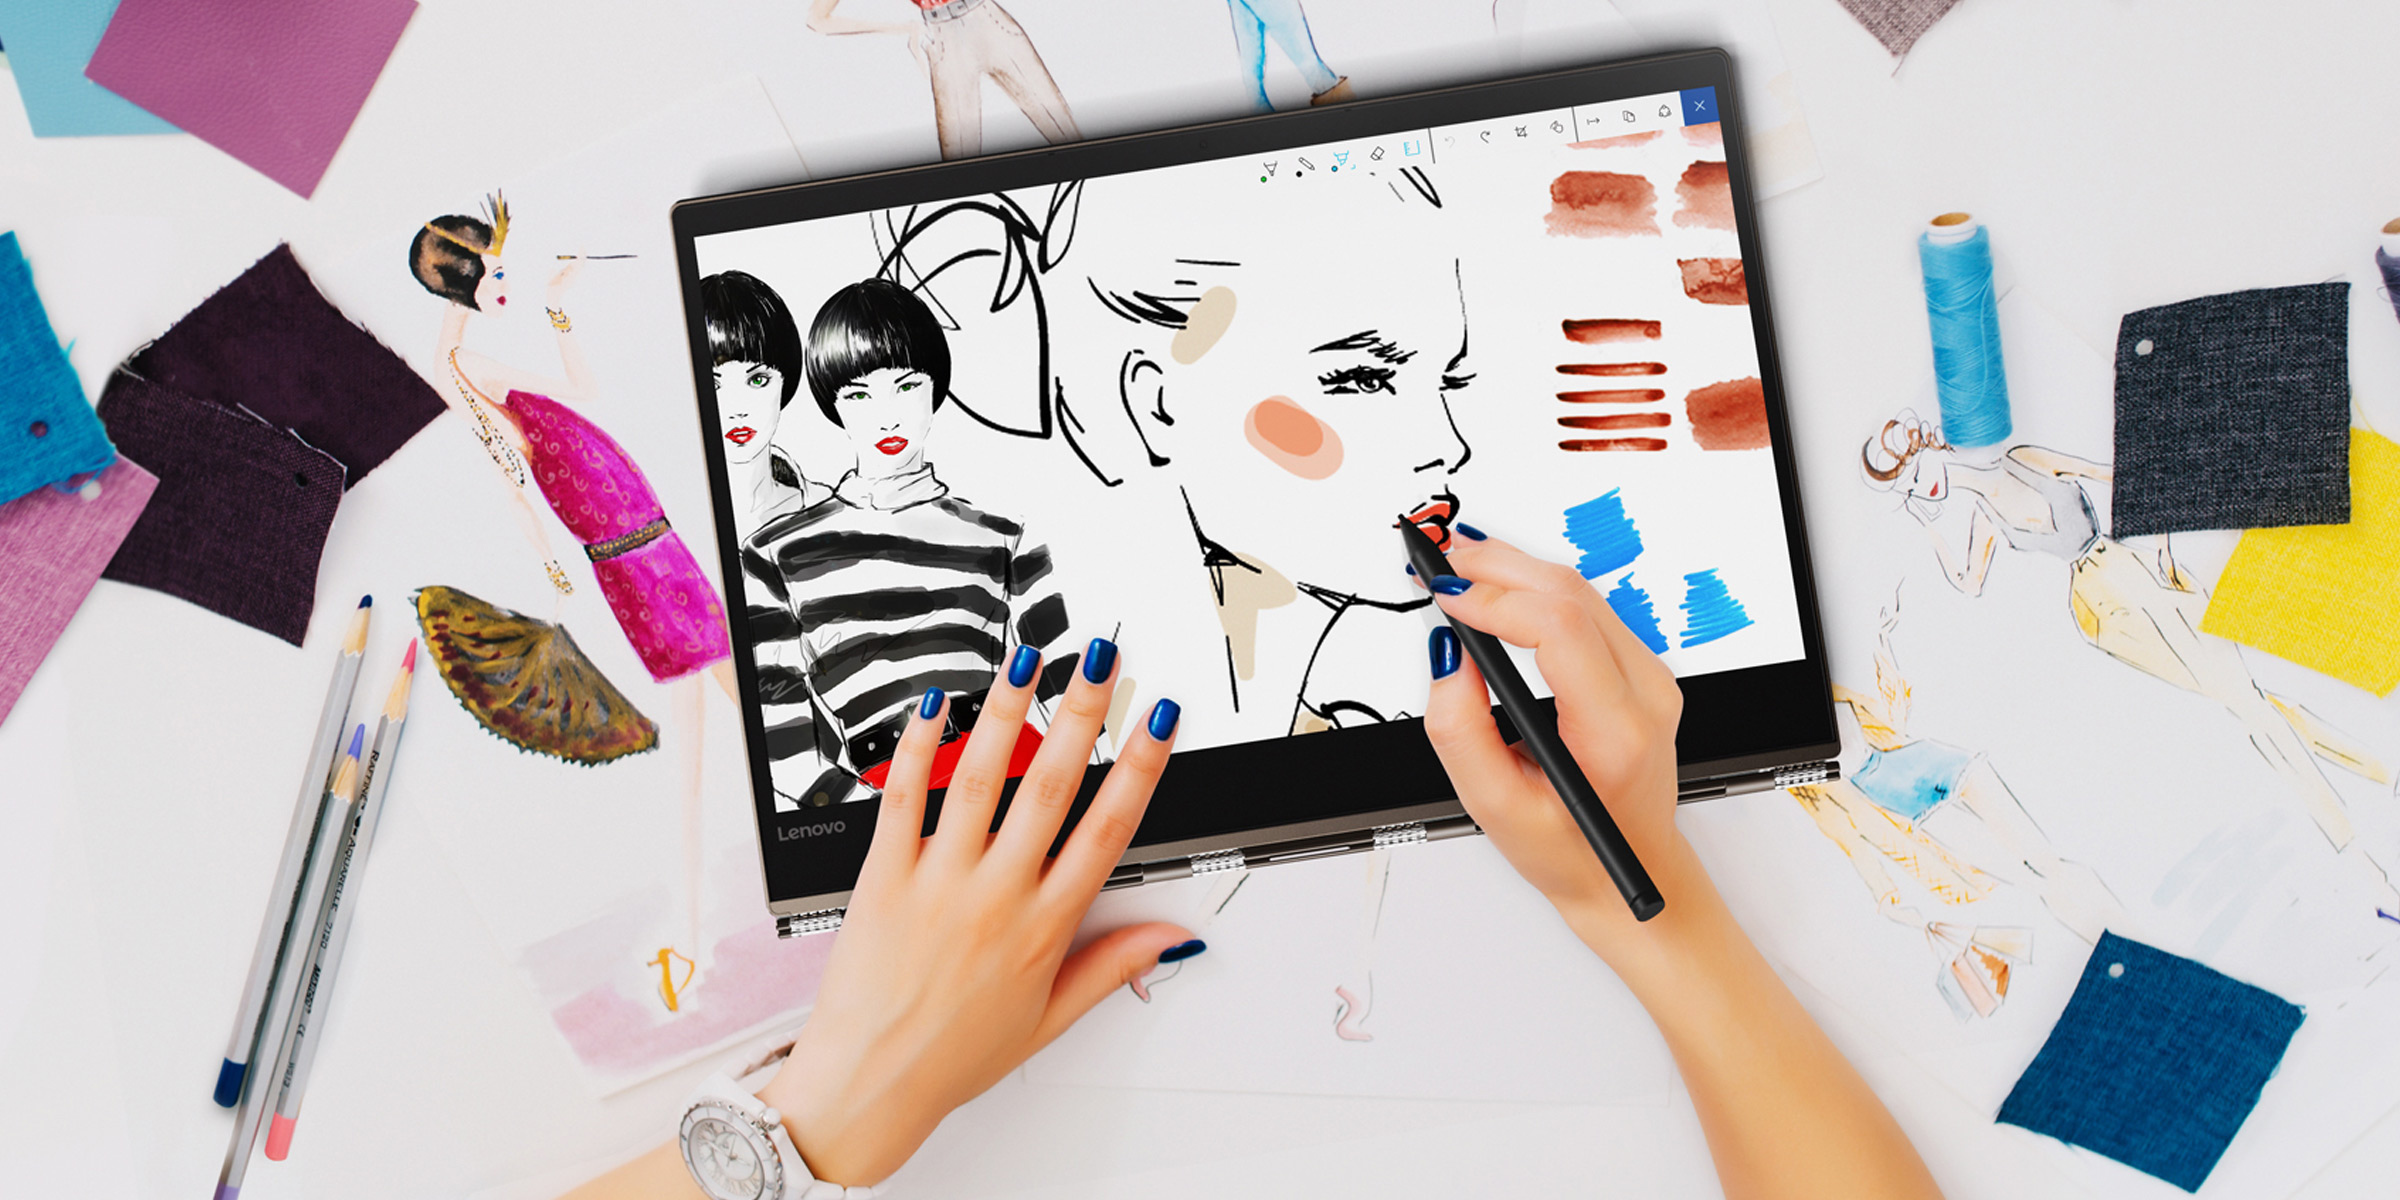 An illustration being created with a digital pen on a Lenovo Yoga 920 in tablet mode.